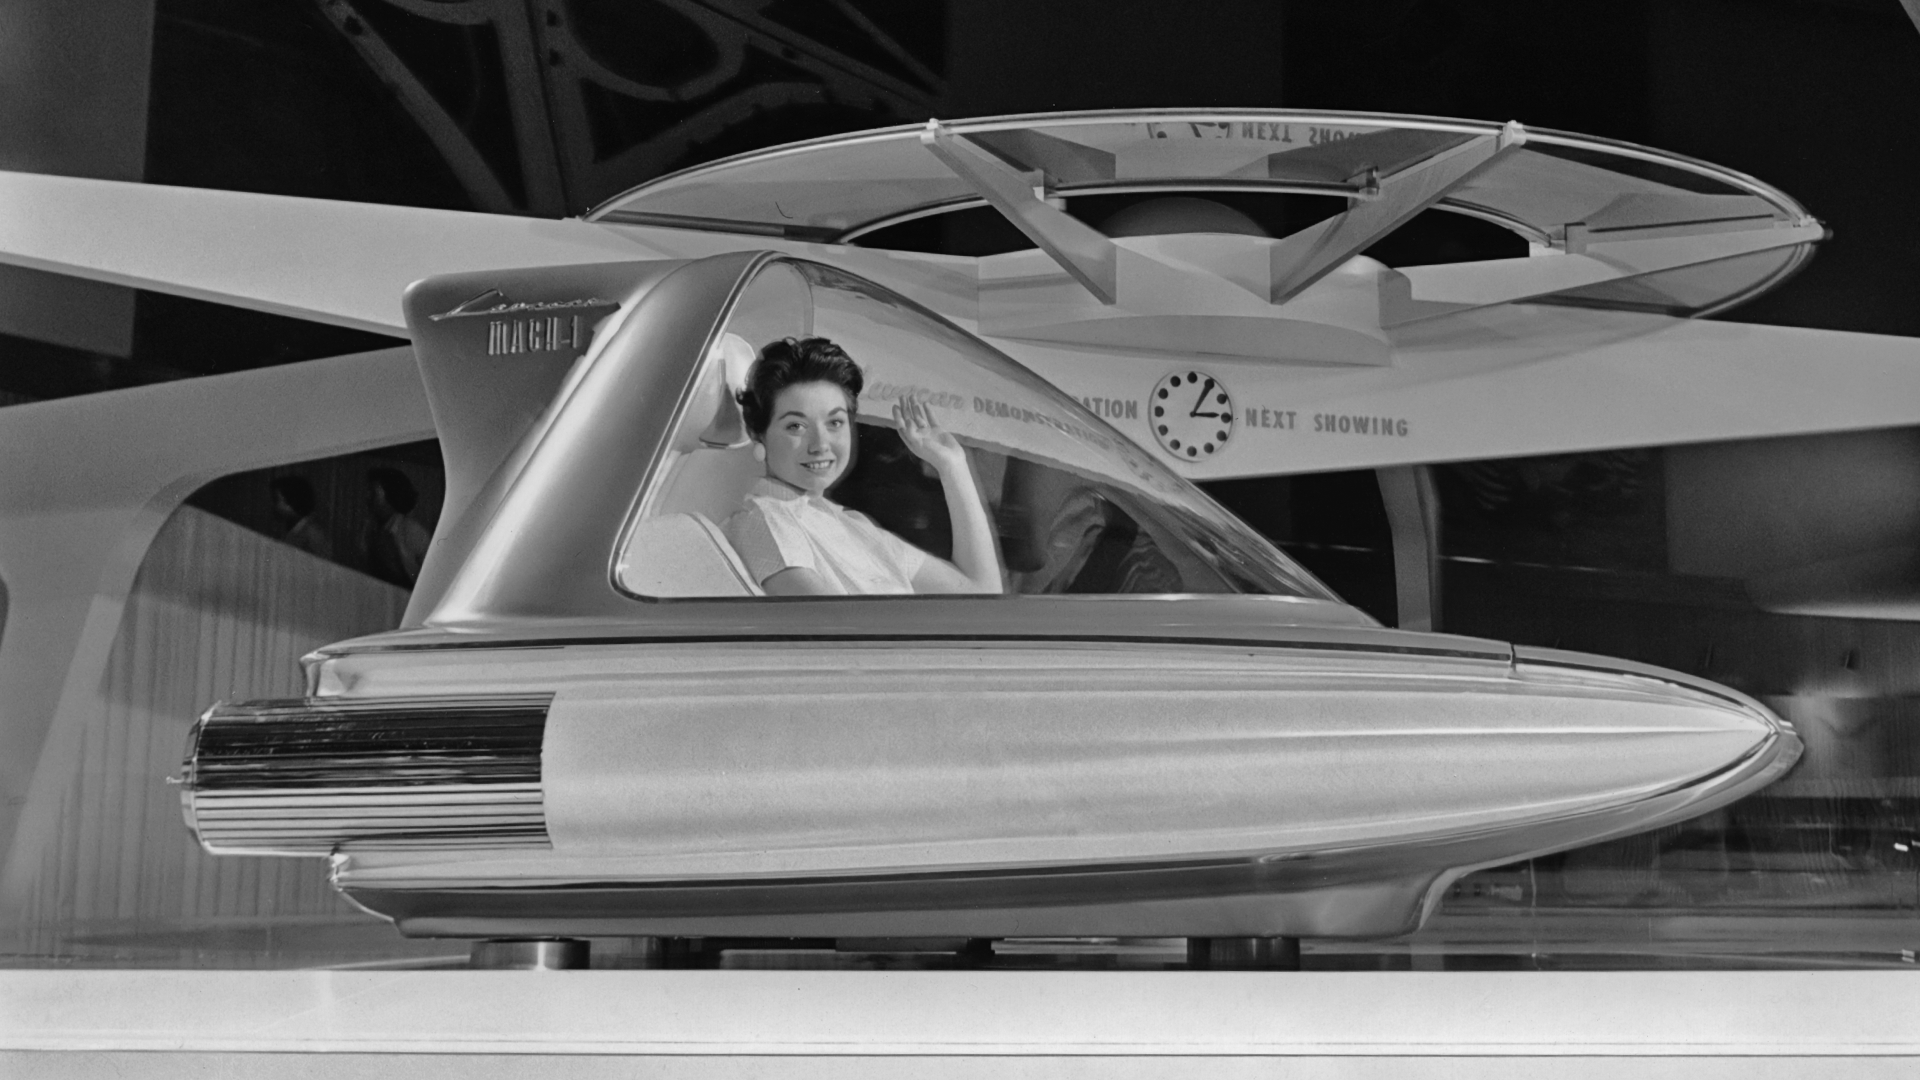 A sky full of driverless flying cars in just a decade